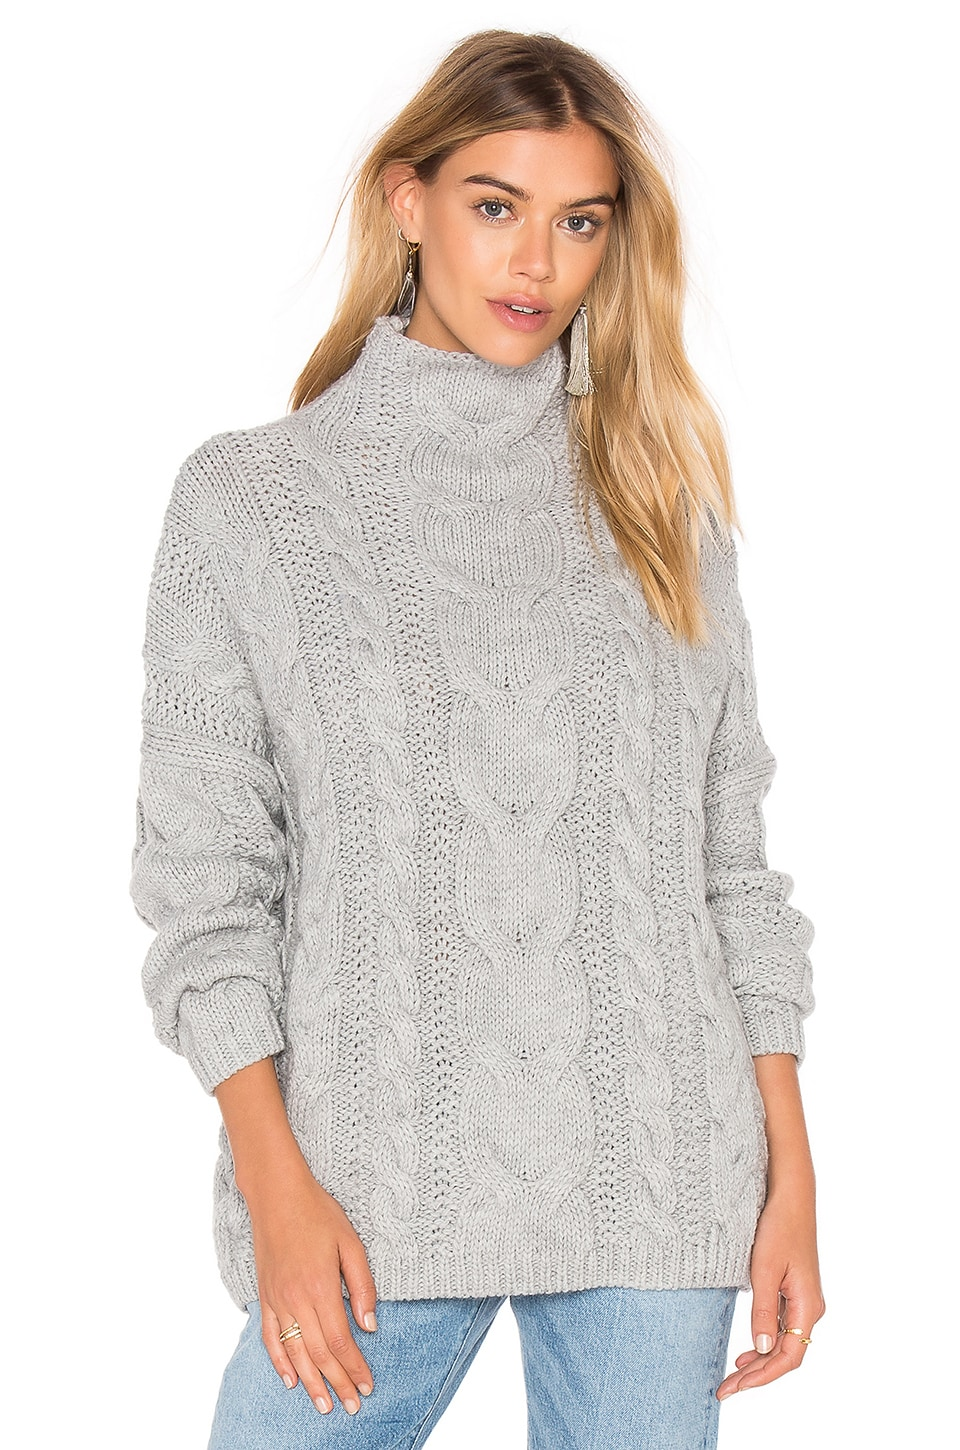 J.O.A. Long Sleeve Turtleneck Sweater in Grey